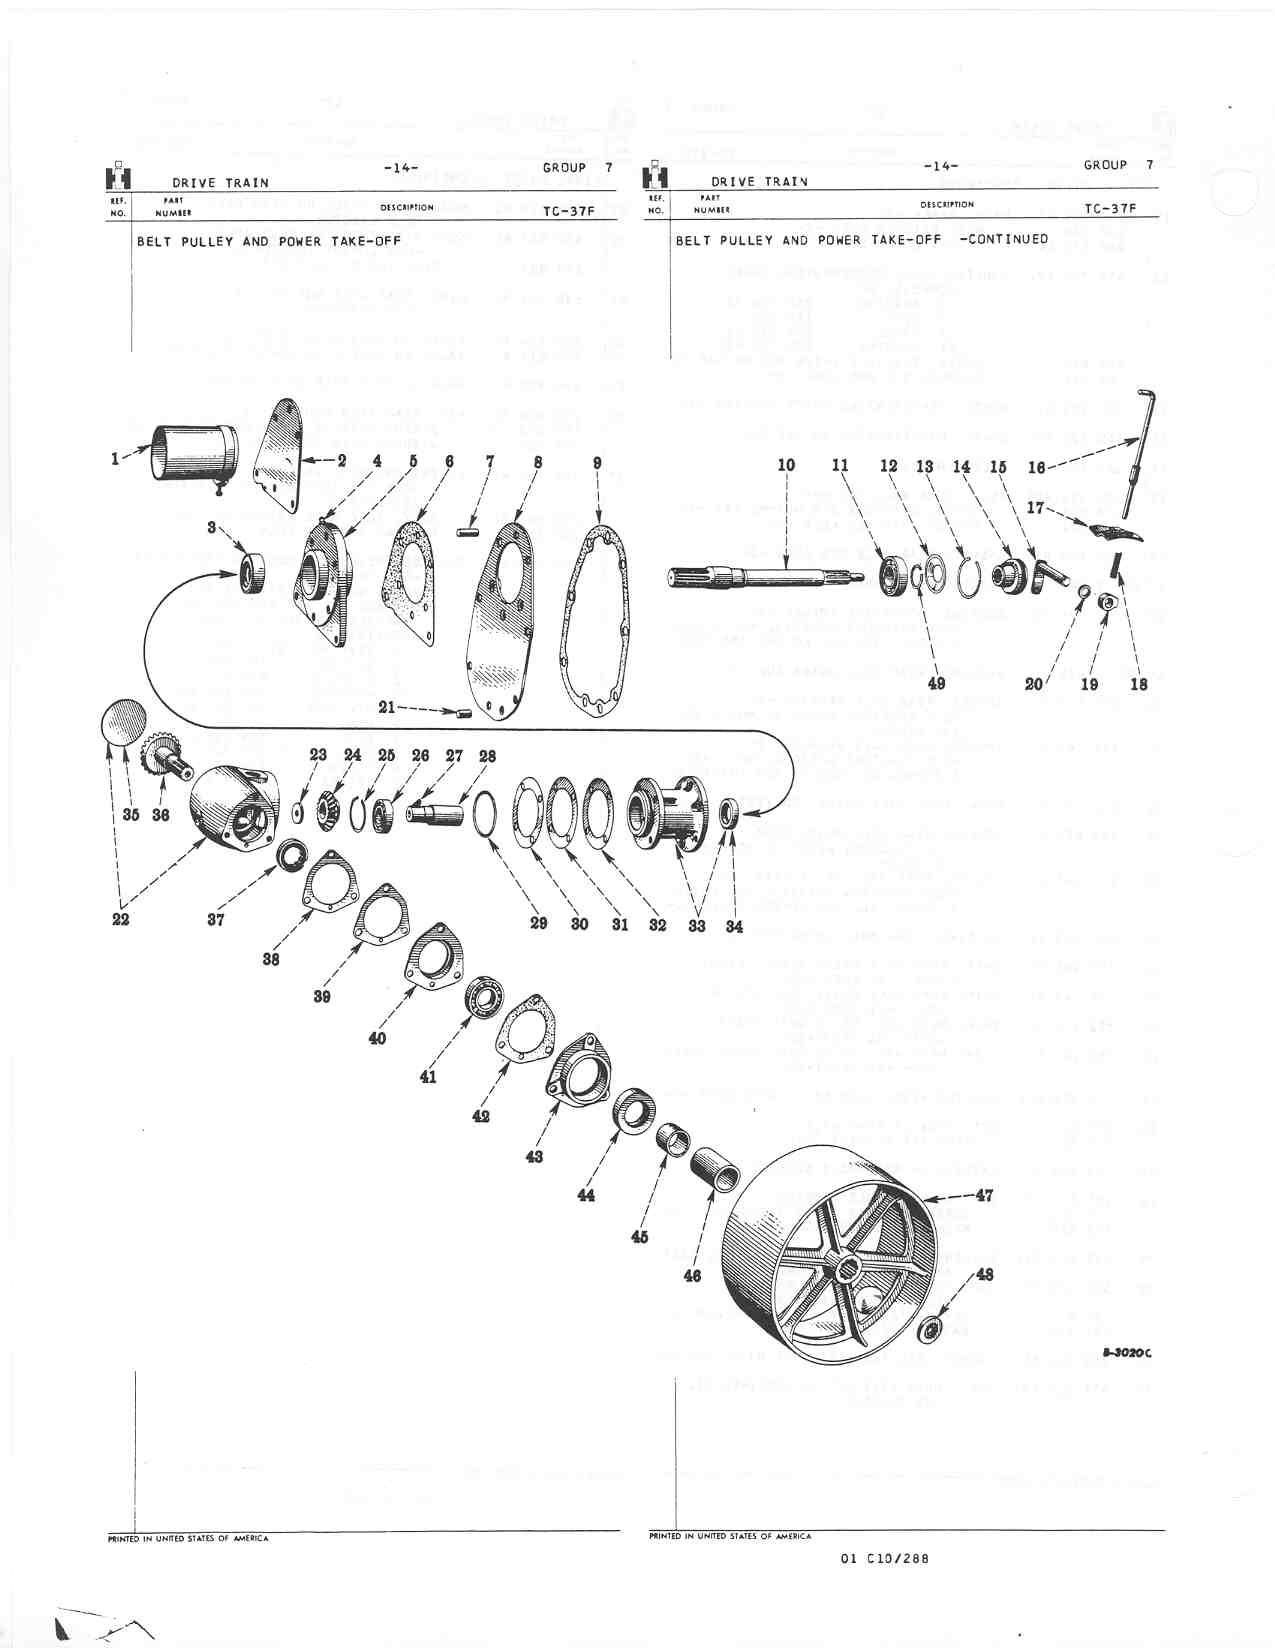 farmall m part diagram clutch farmall m trans parts diagram farmall super a wiring diagram small resolution of farmall 560 pto diagram wiring diagram blogs farmall m parts diagram farmall 560